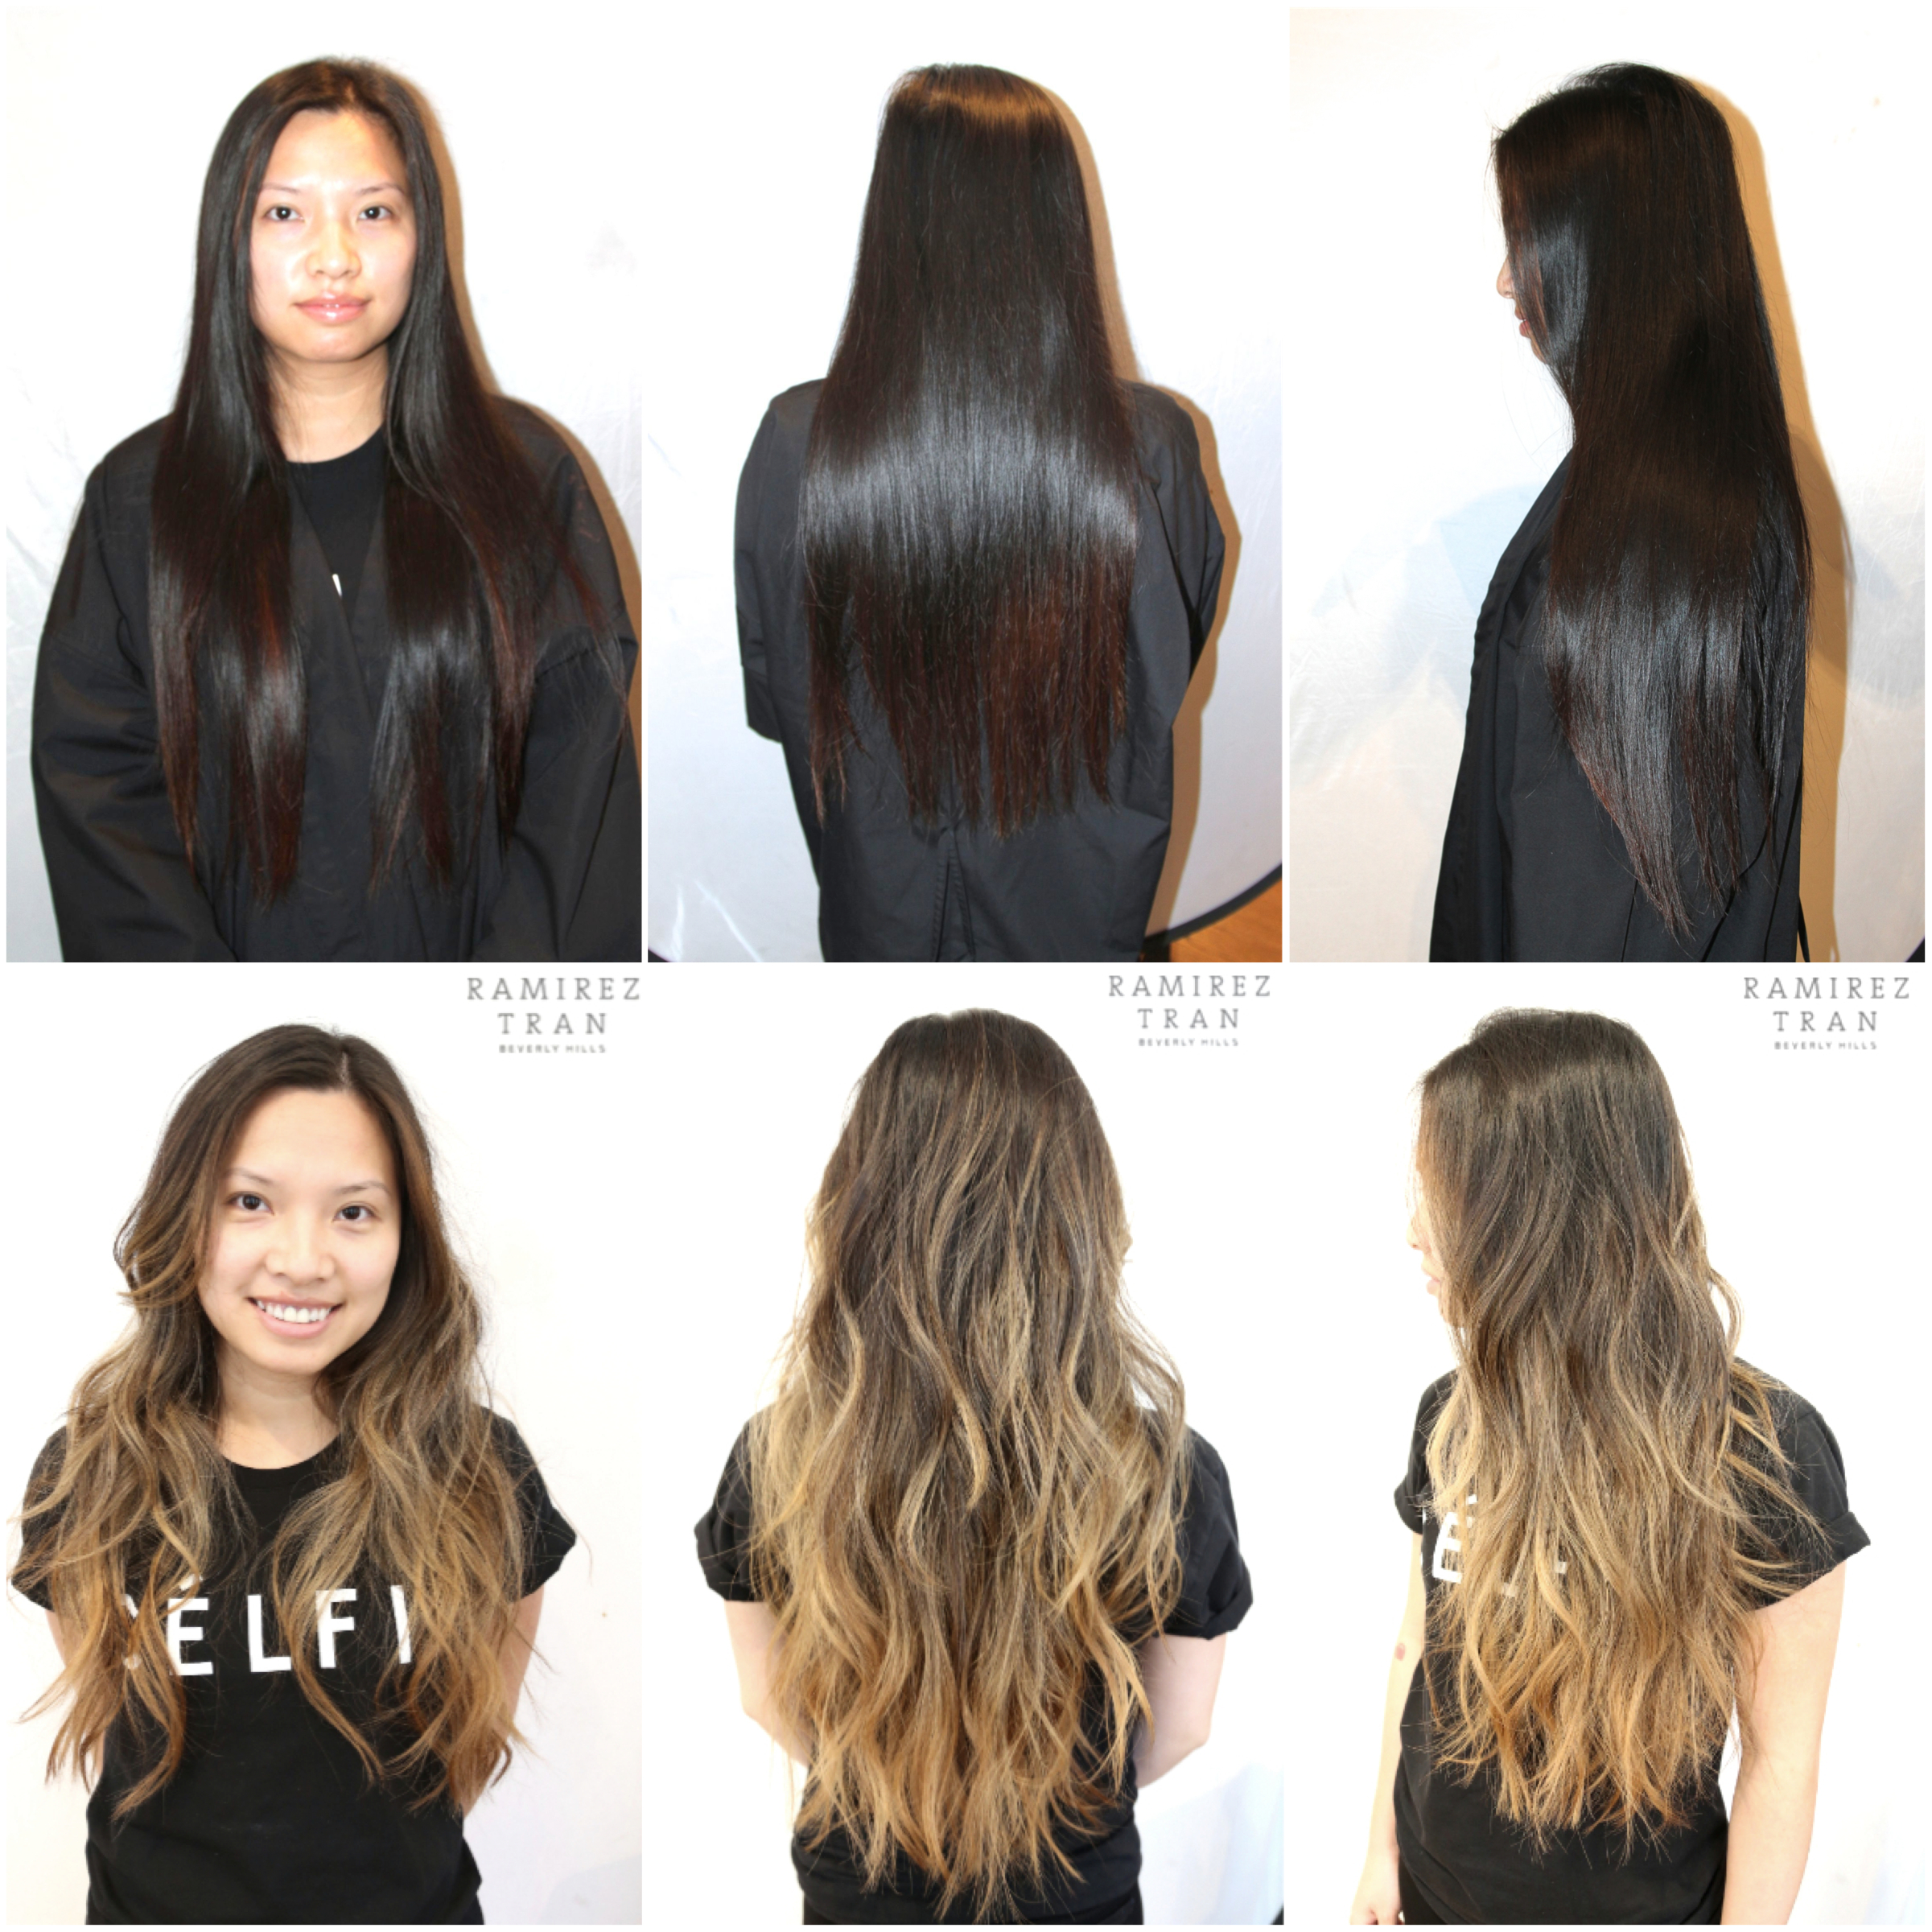 California Style Hair Color Cool All Done In One Day  The Salon In Nyc  Ramirez  Tran Salon